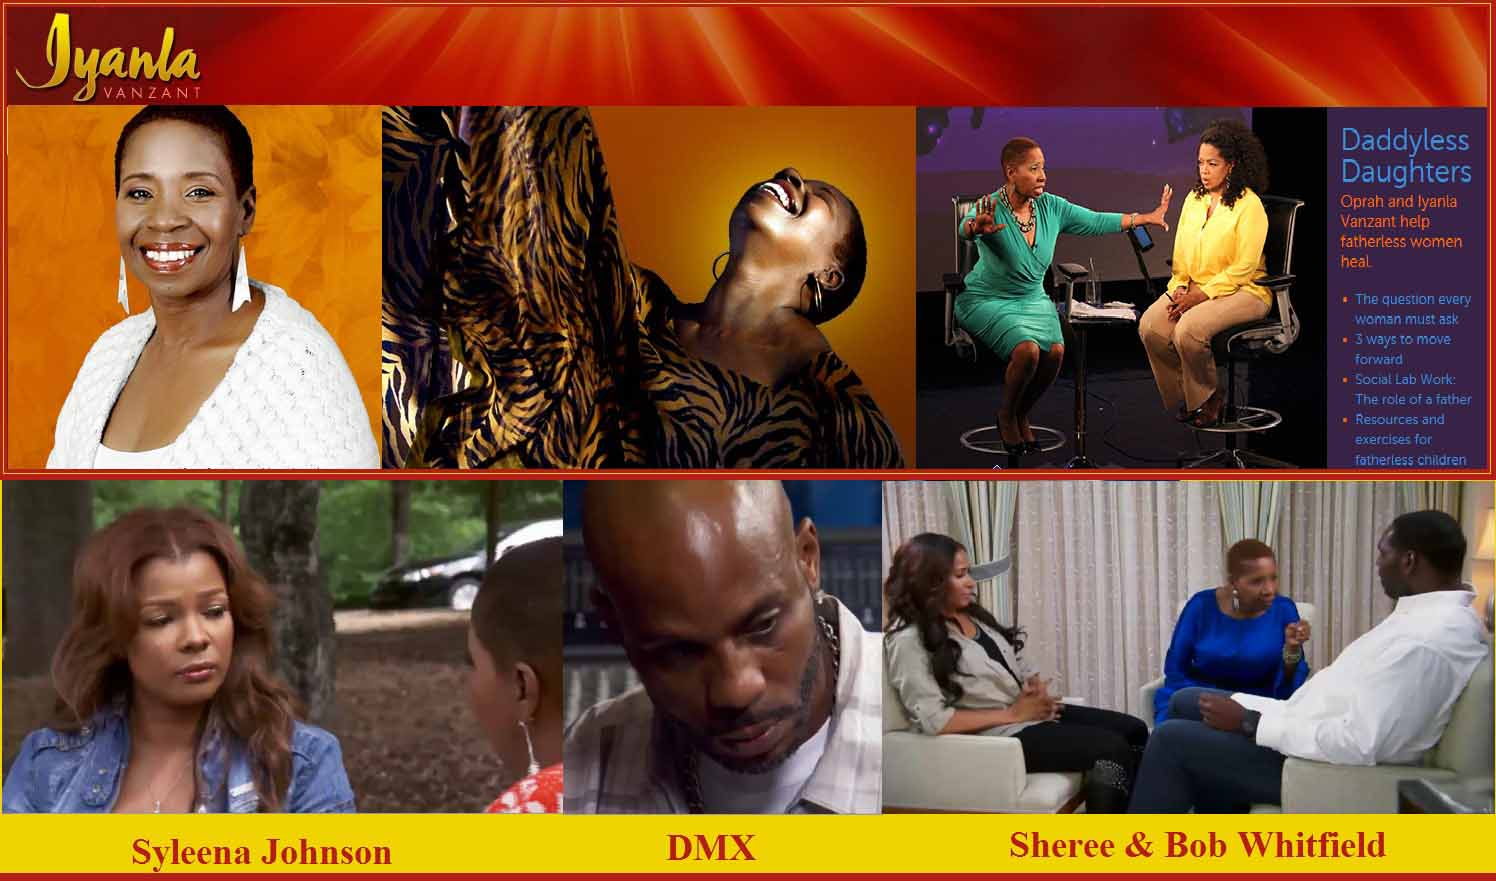 Iyanla:  'Black Women Are Out Of Order & Give Black Men Too Much Control Over Their Lives'